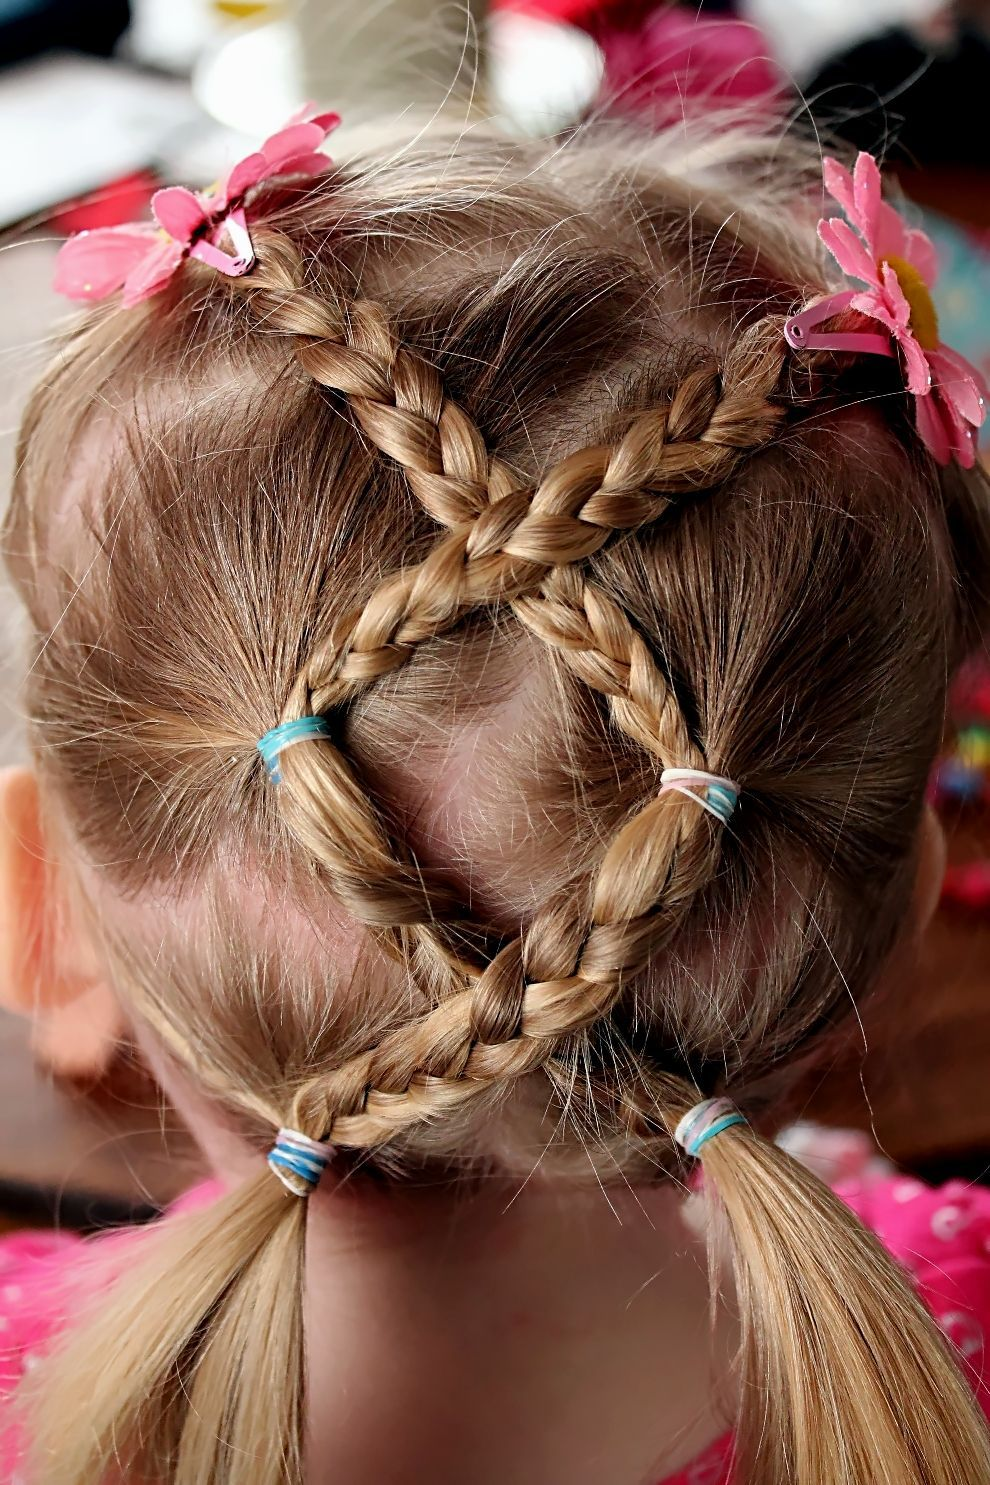 Cute Hairstyles For 3 Year Olds | Princess hairstyles, Girl hair dos, Little girl hairstyles